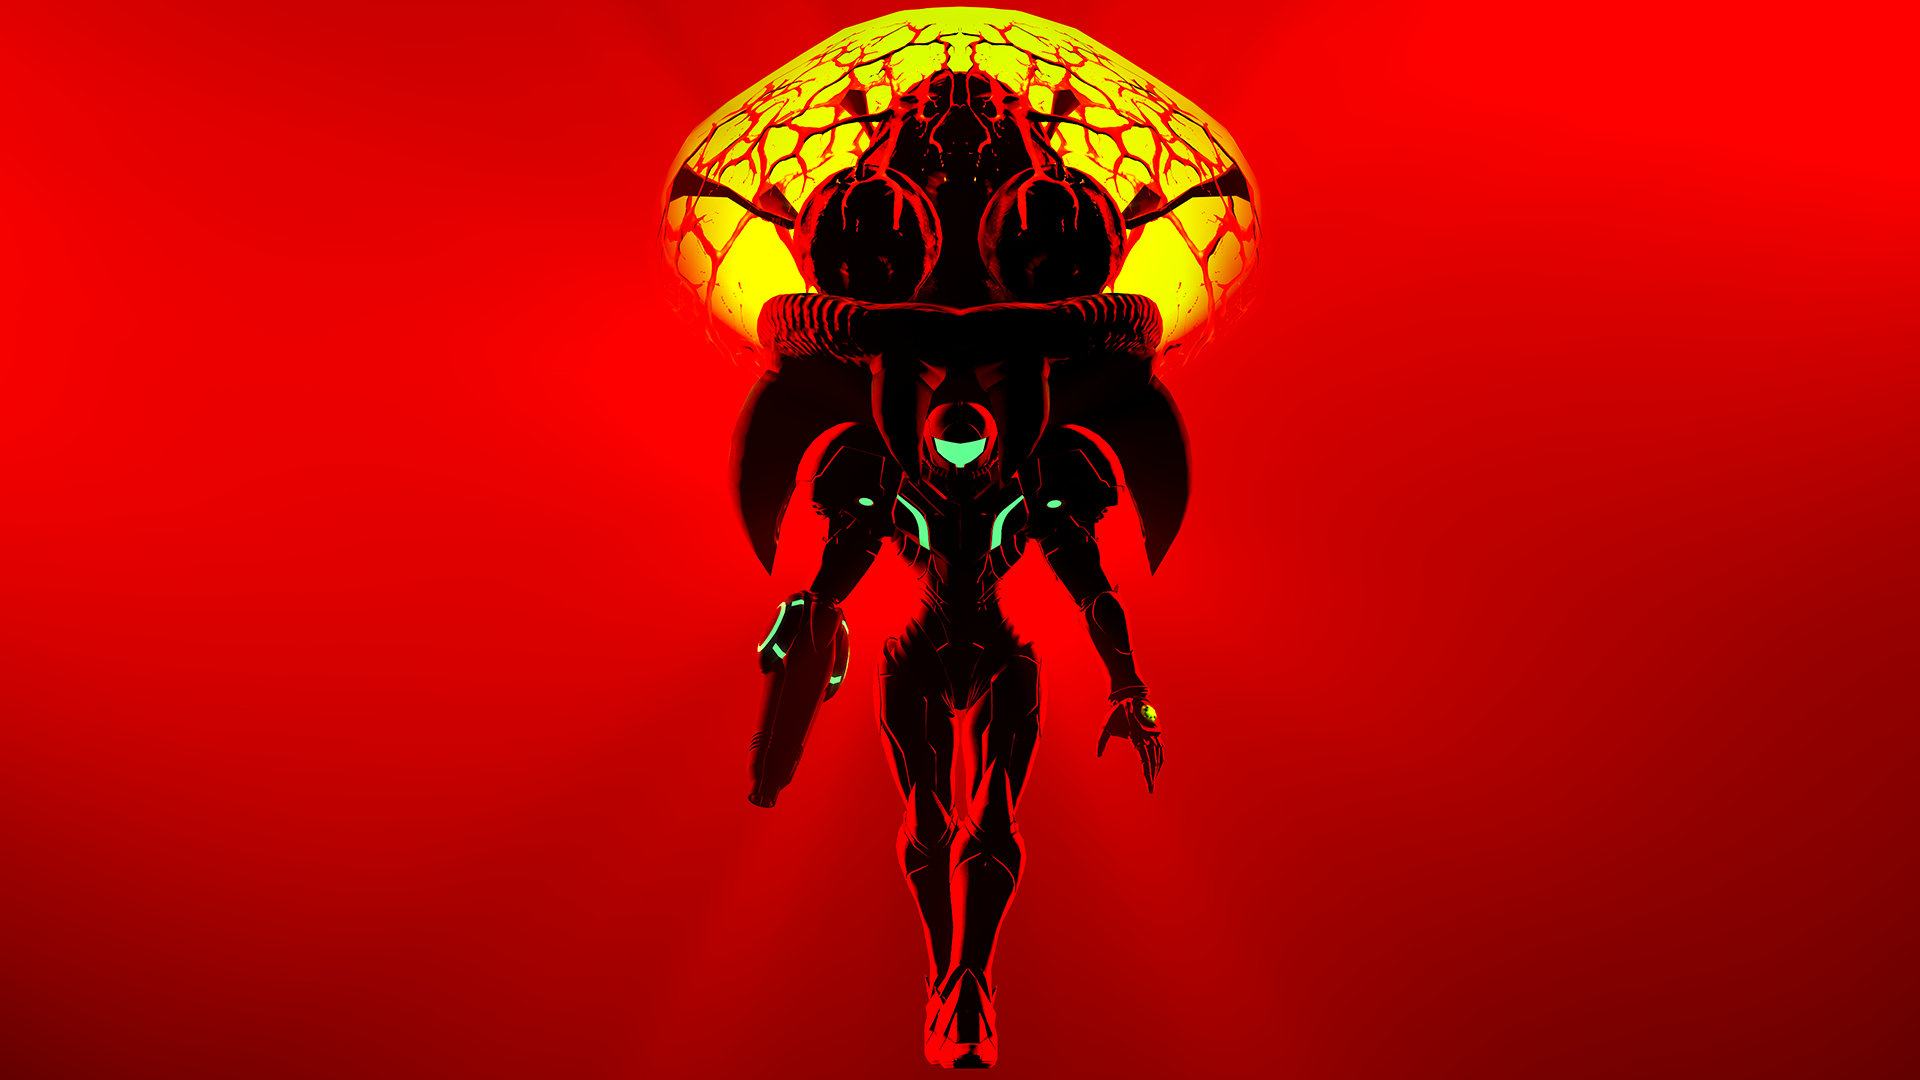 samus and metroid (wallpaper)geniusgt on deviantart